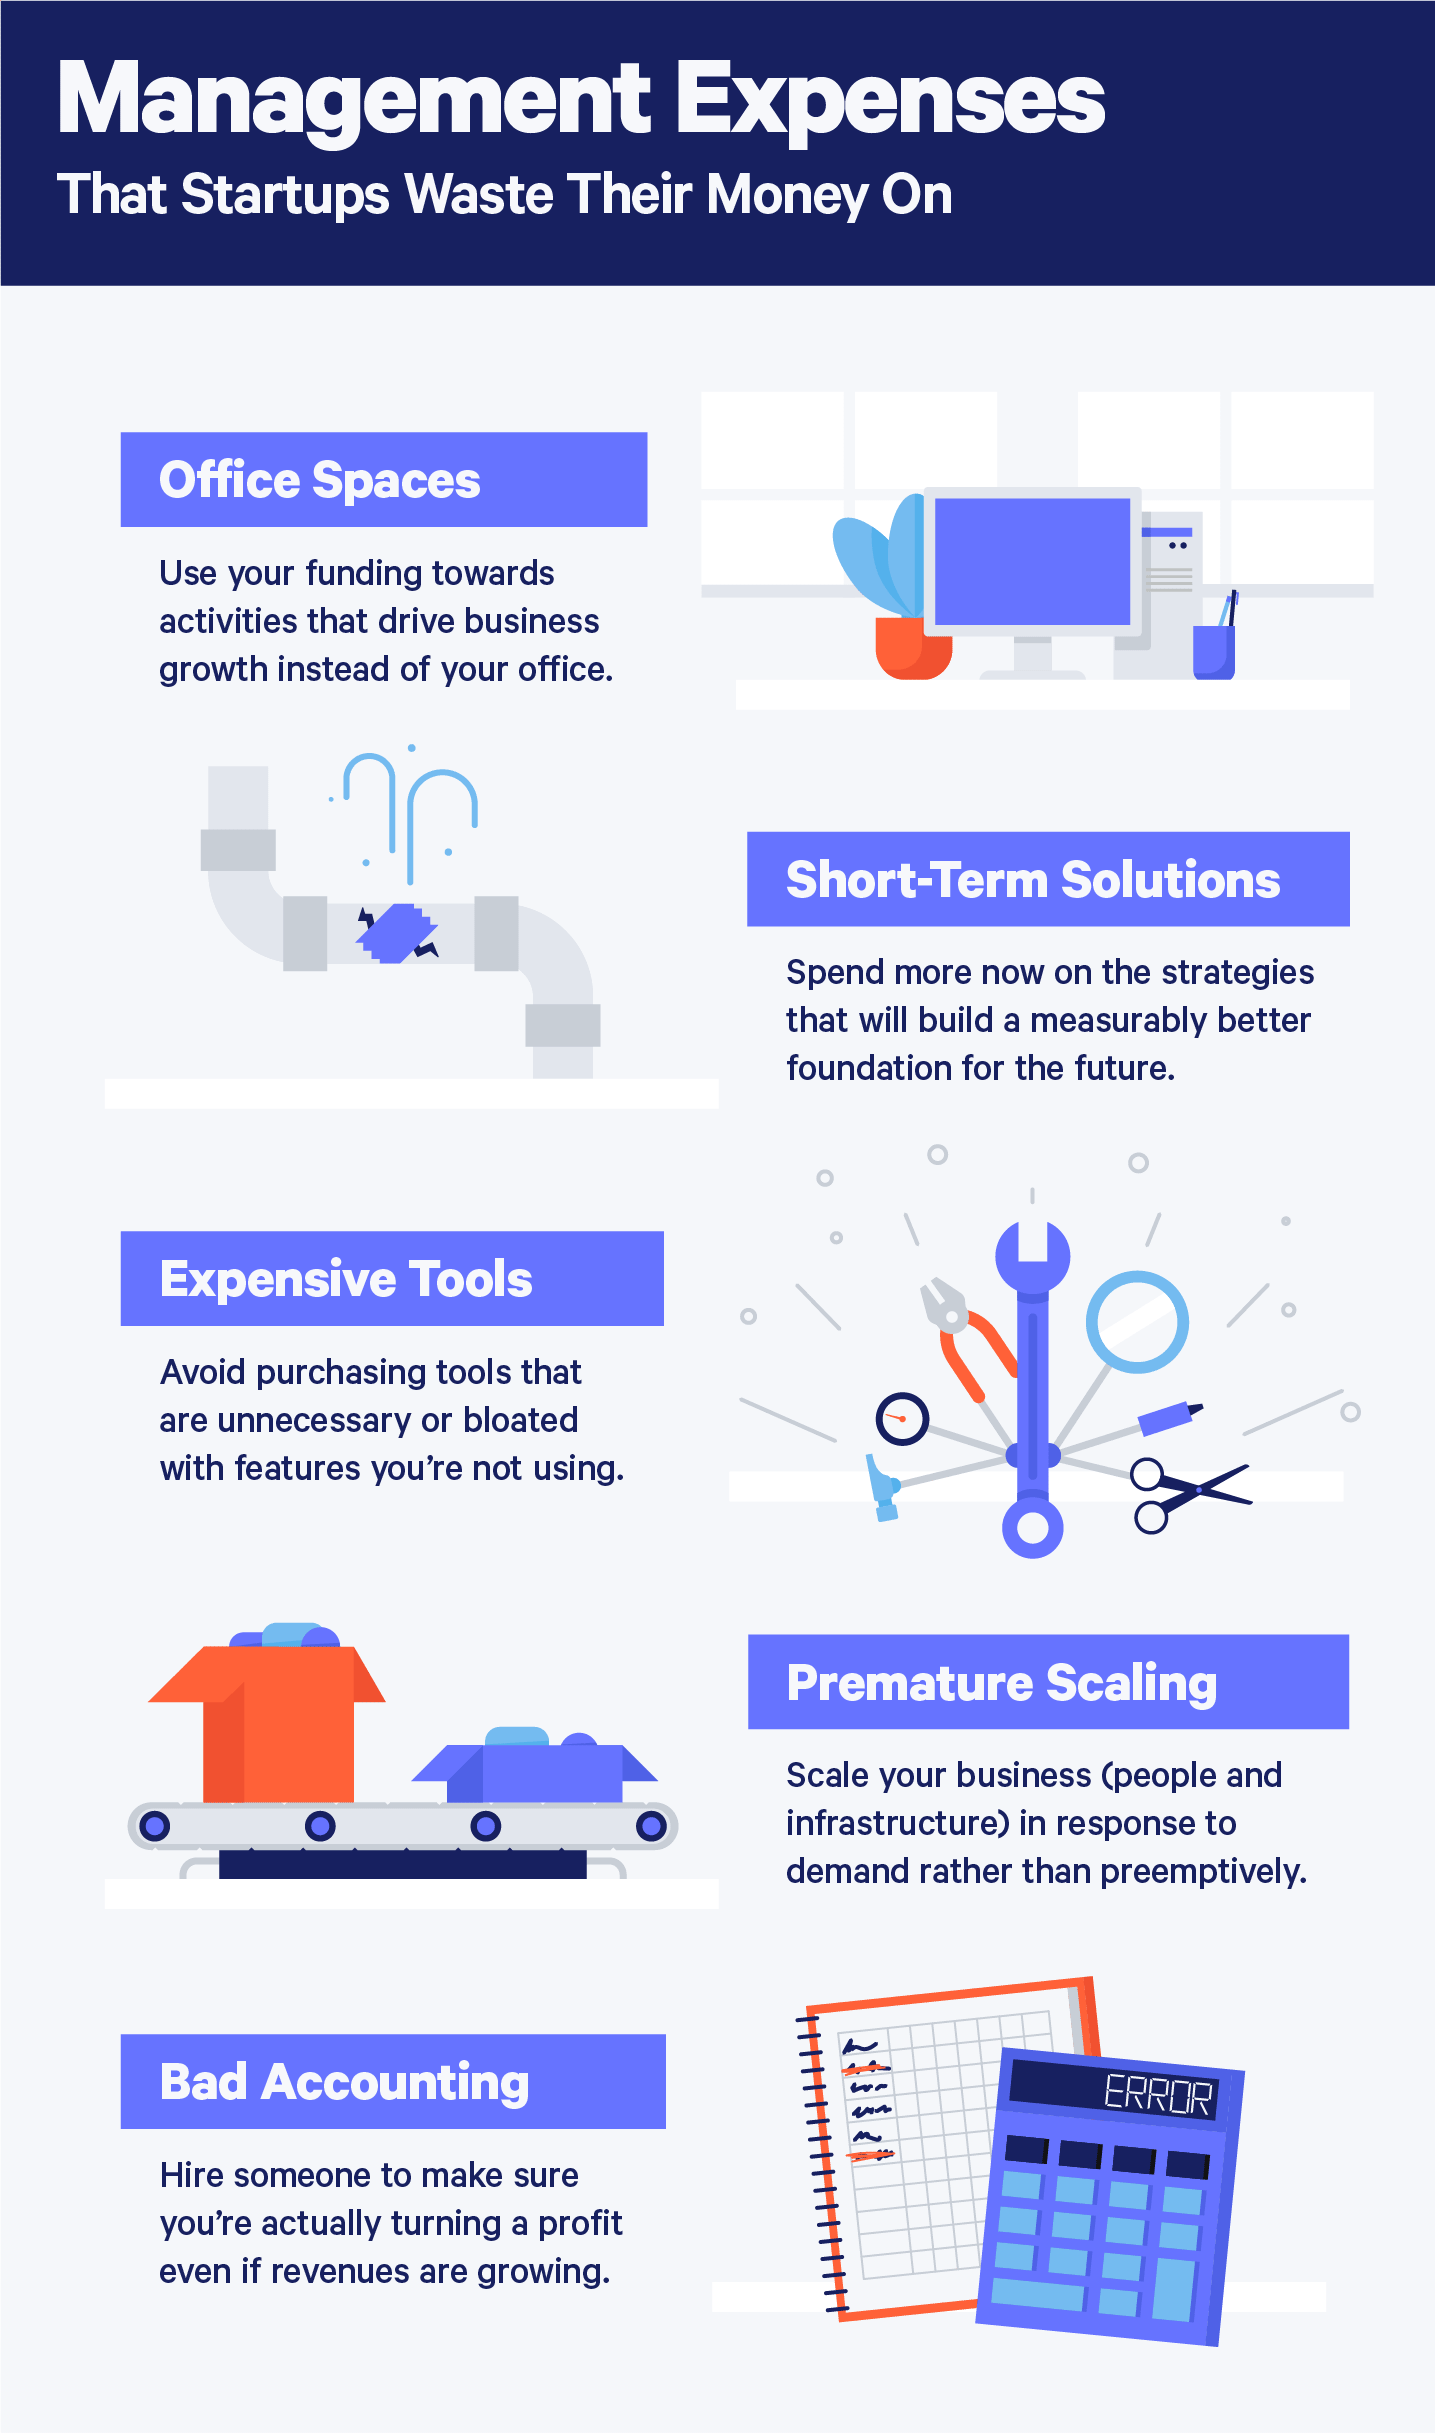 management expenses that startups waste their money on illustrations